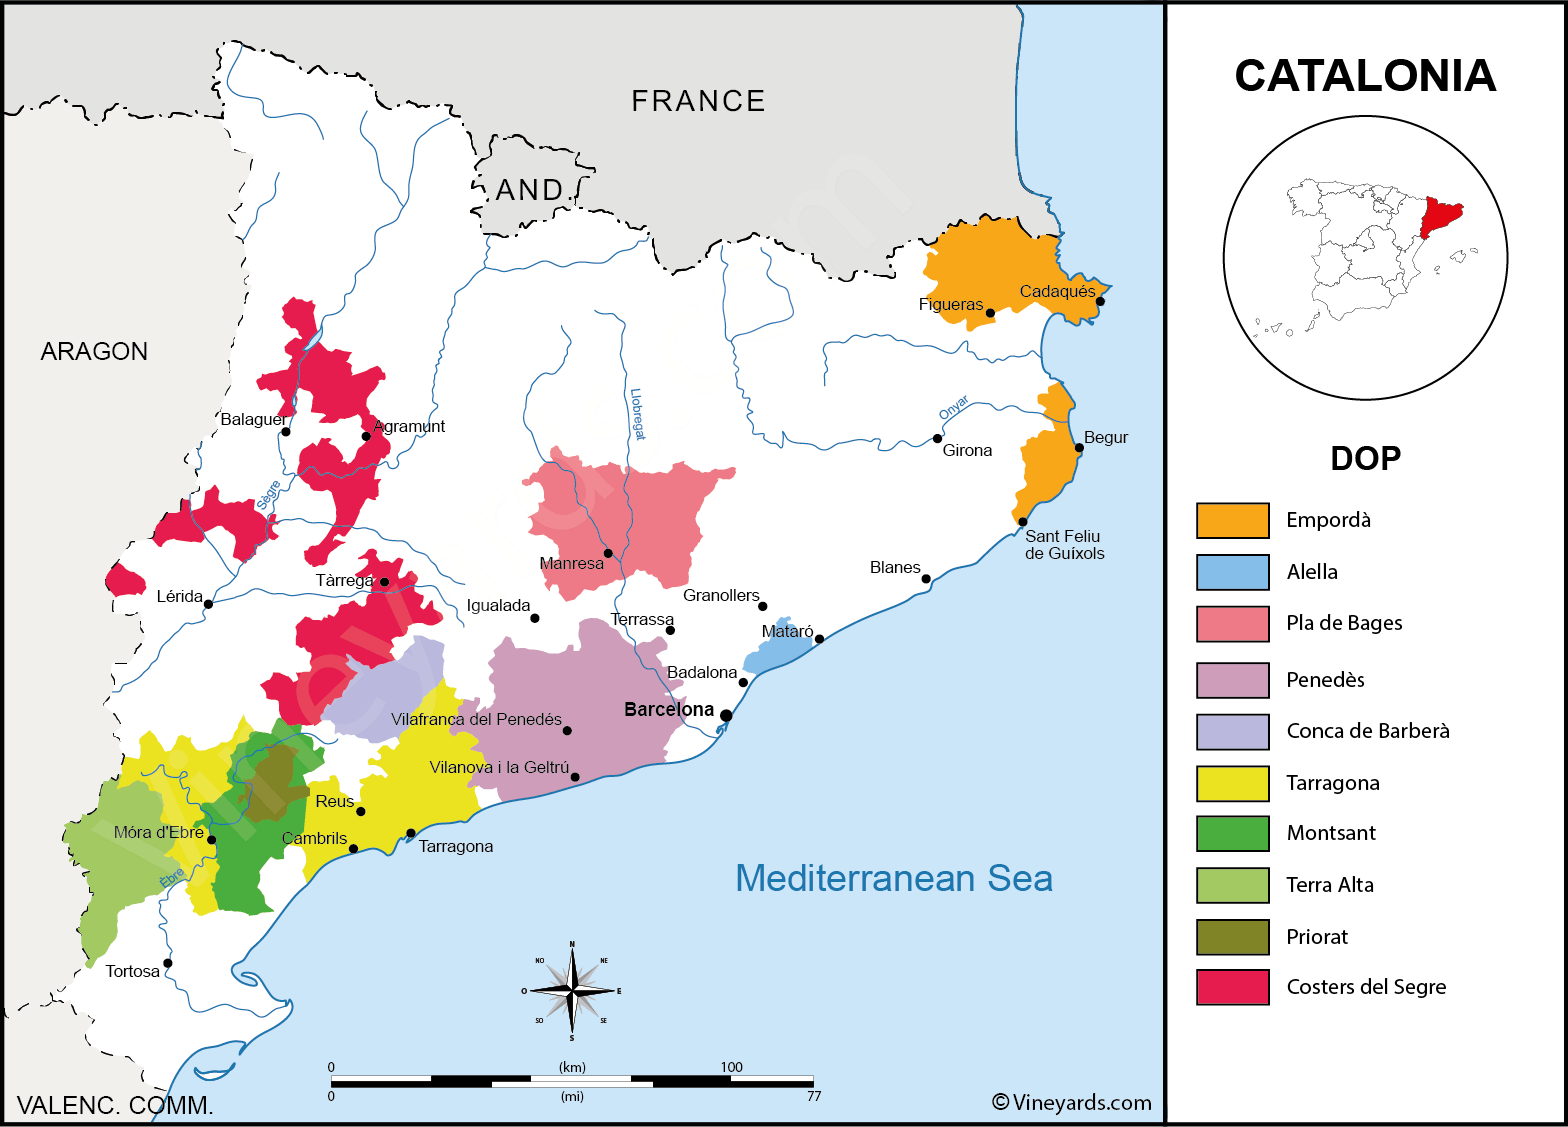 World Map Catalonia. Catalonia Vineyard Wine regions Map of Vineyards Regions